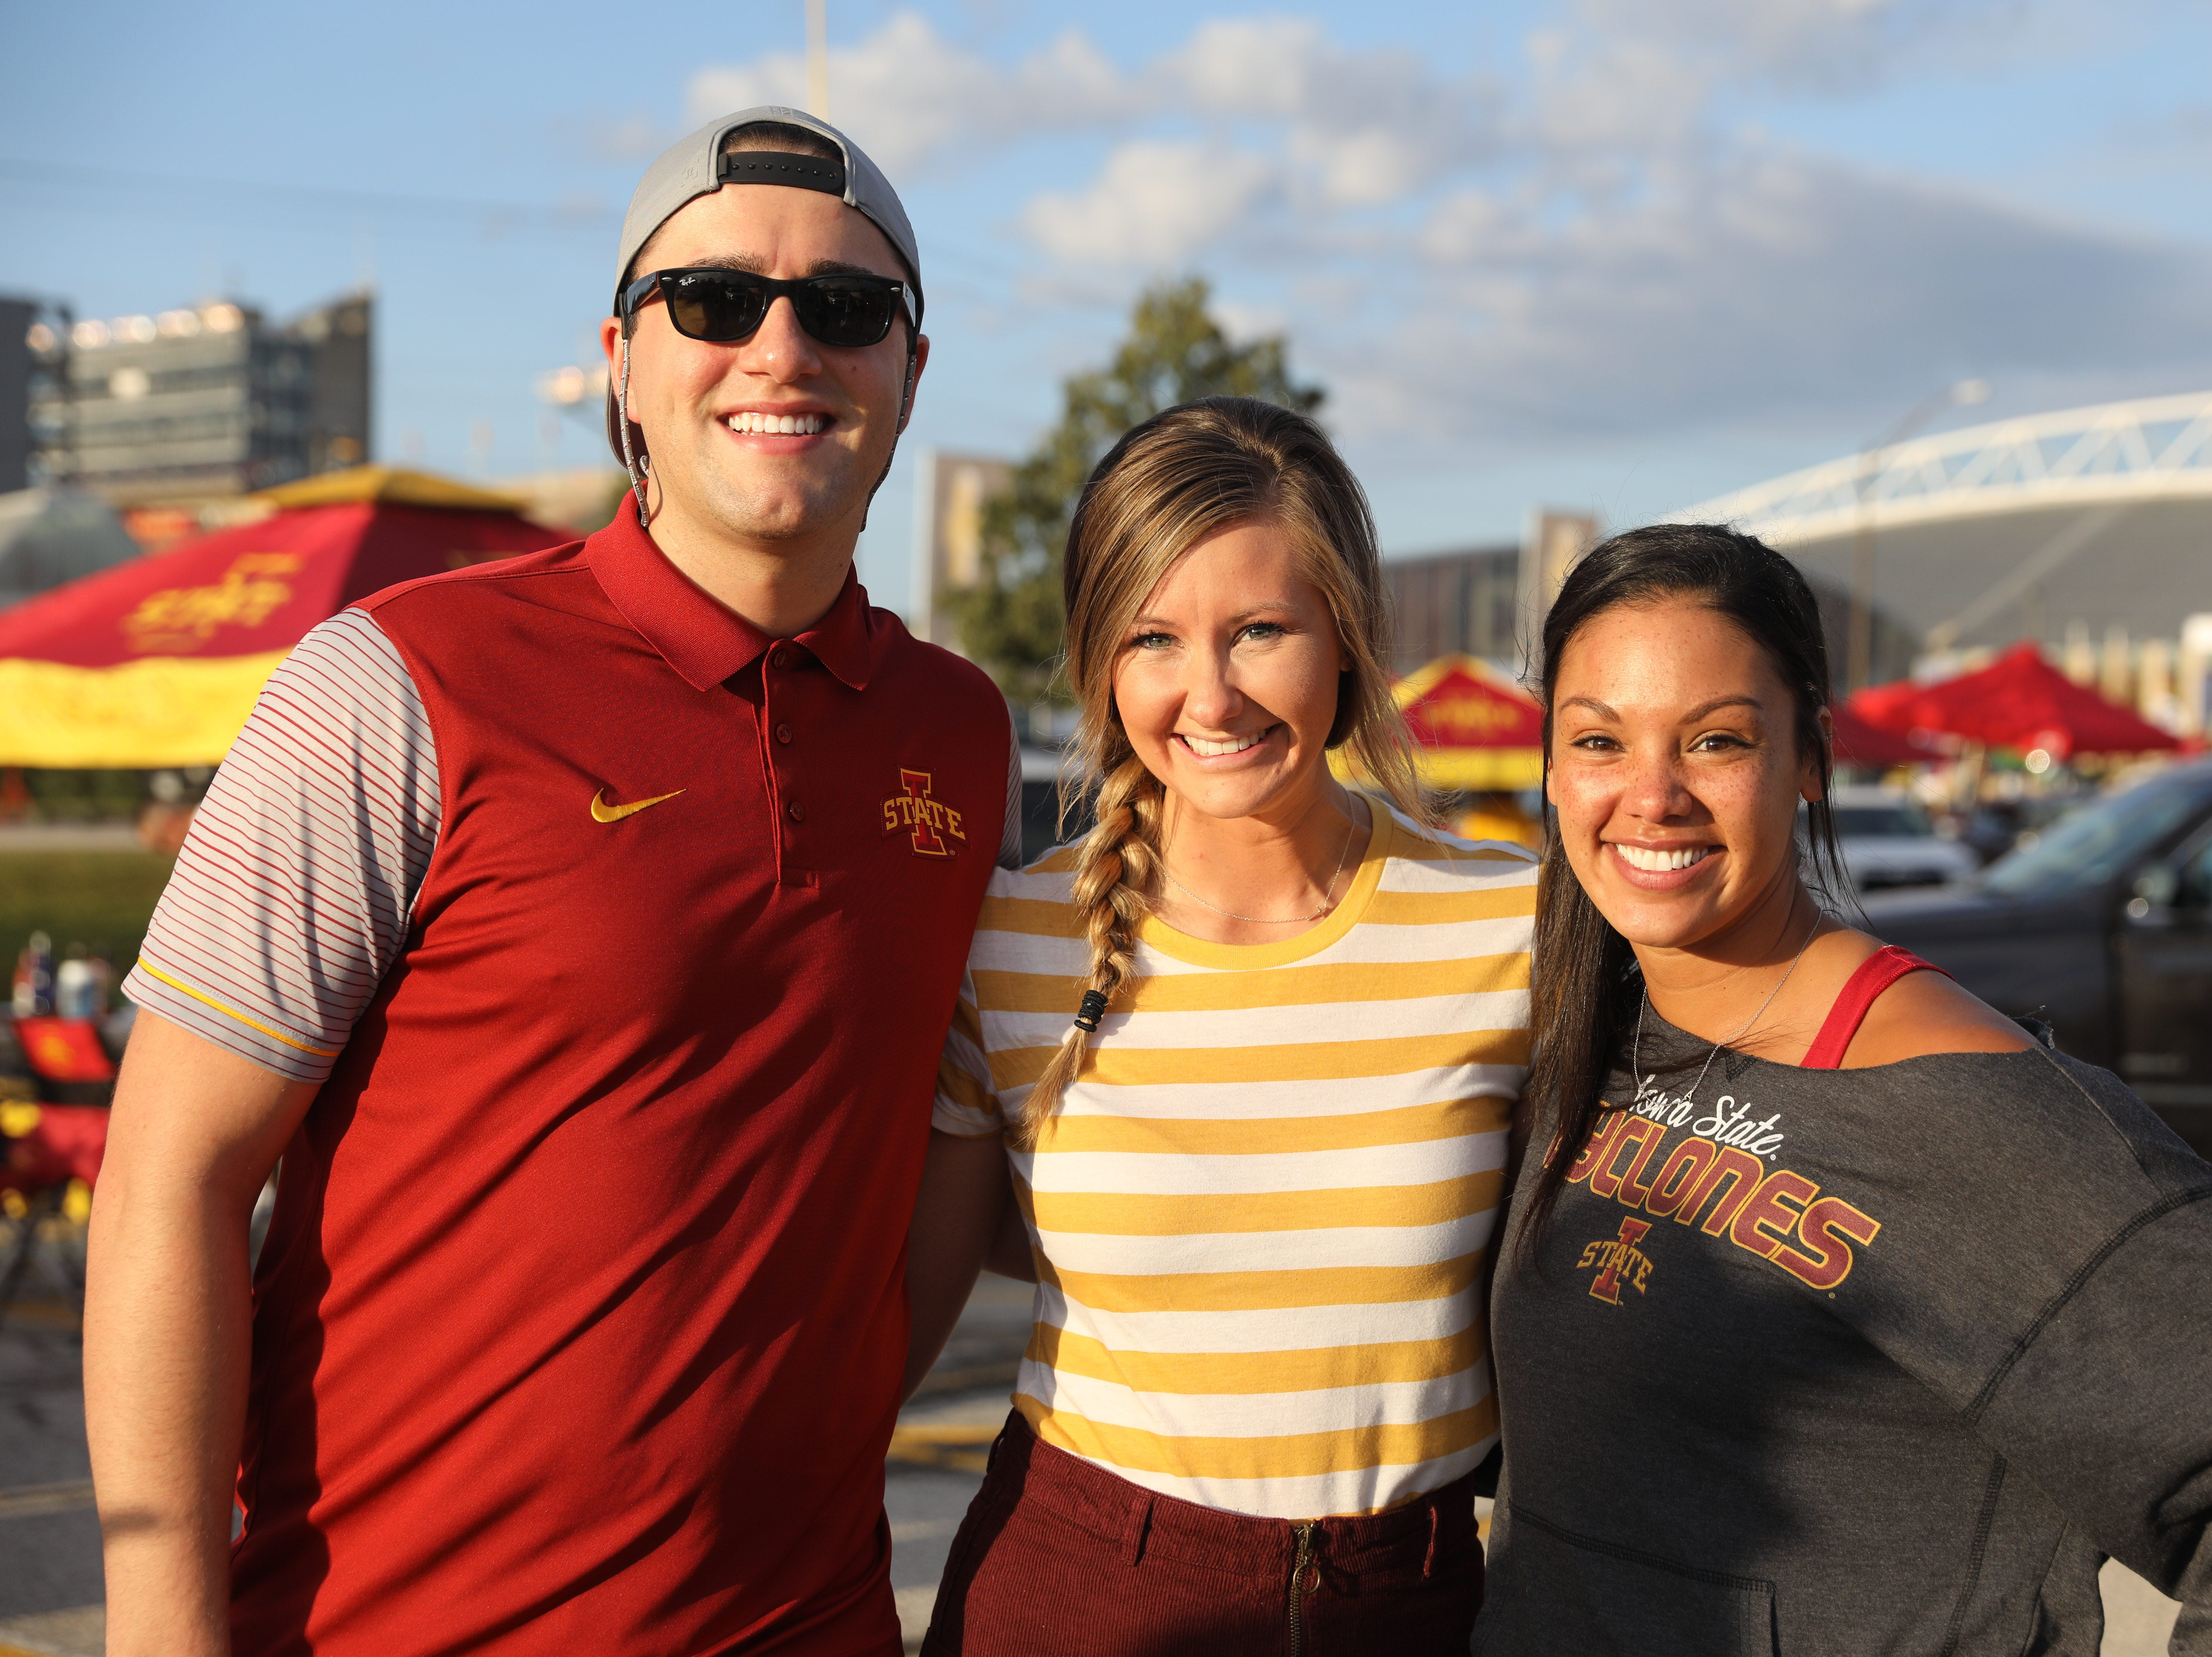 Tony Thomas, 25, (from left) Holly Nelson, 26, both of West Des Moines, and Alex Hudson, 28, of Clive, Saturday, Sept. 15, 2018, before the Iowa State football game against Oklahoma in Ames.